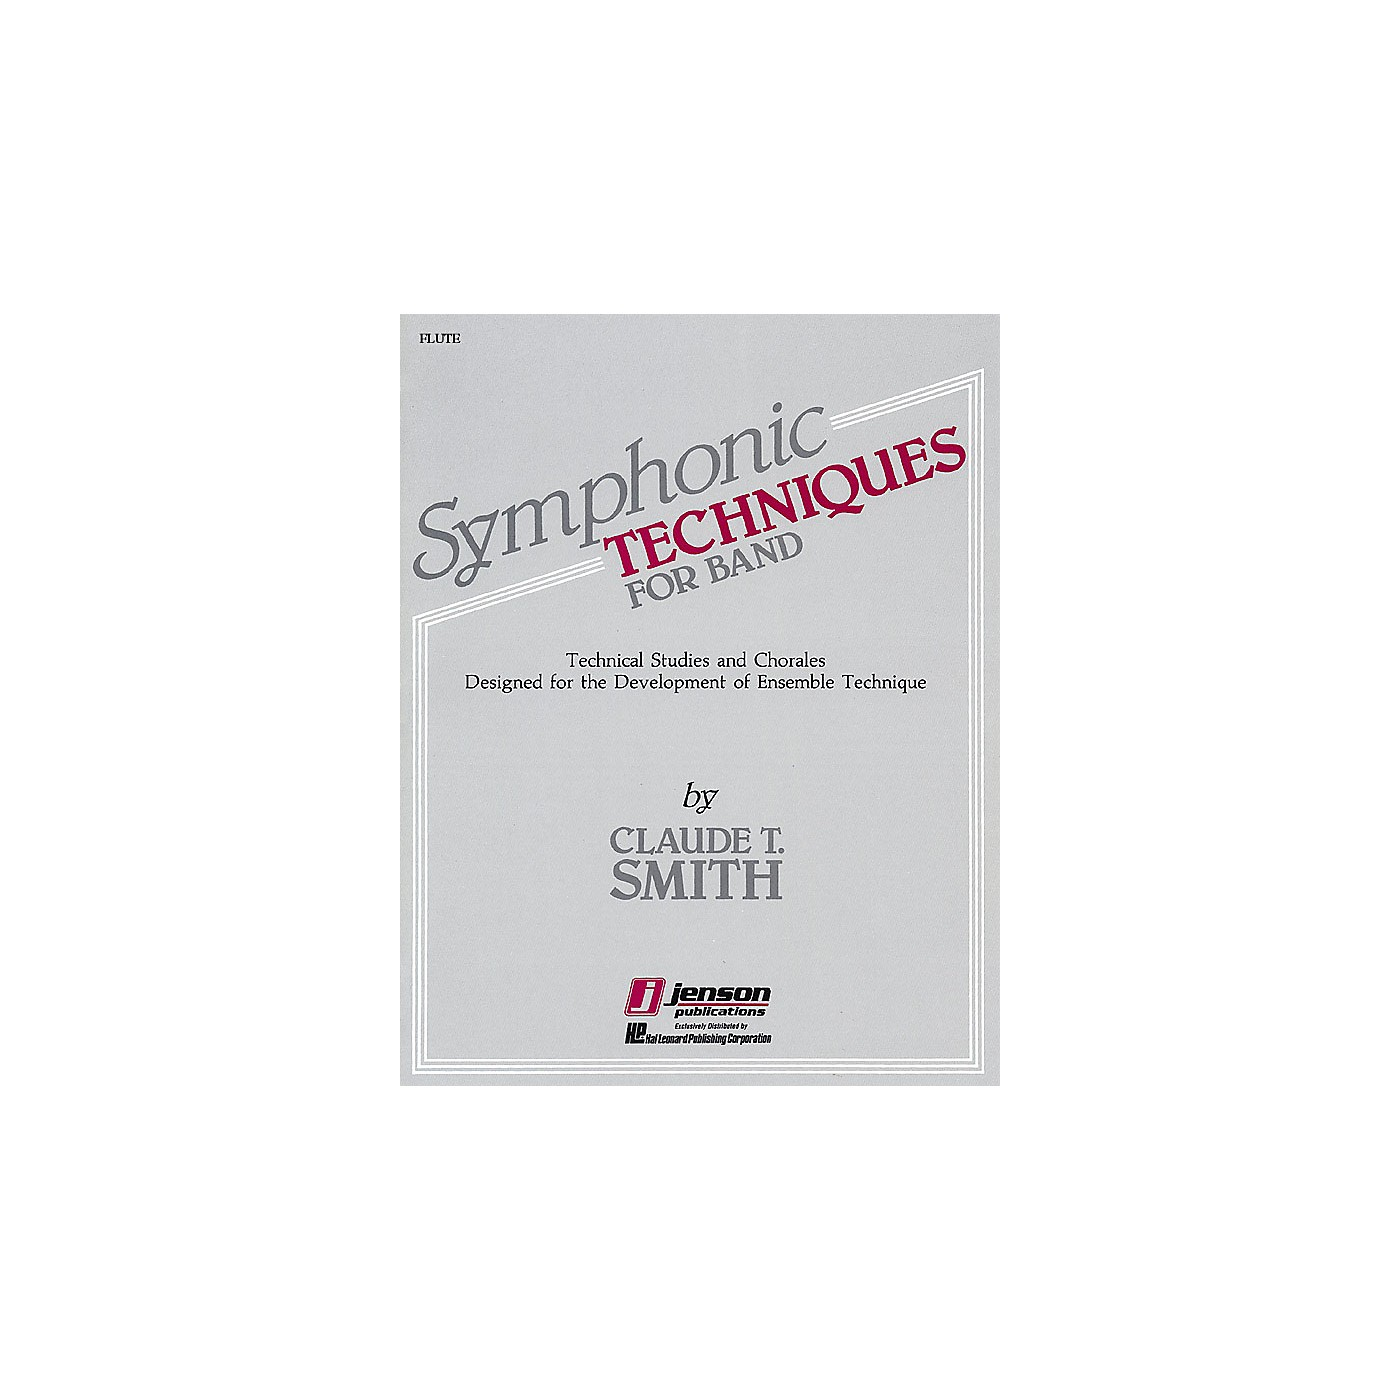 Hal Leonard Symphonic Techniques for Band (Flute) Concert Band Level 2-3 Composed by Claude T. Smith thumbnail